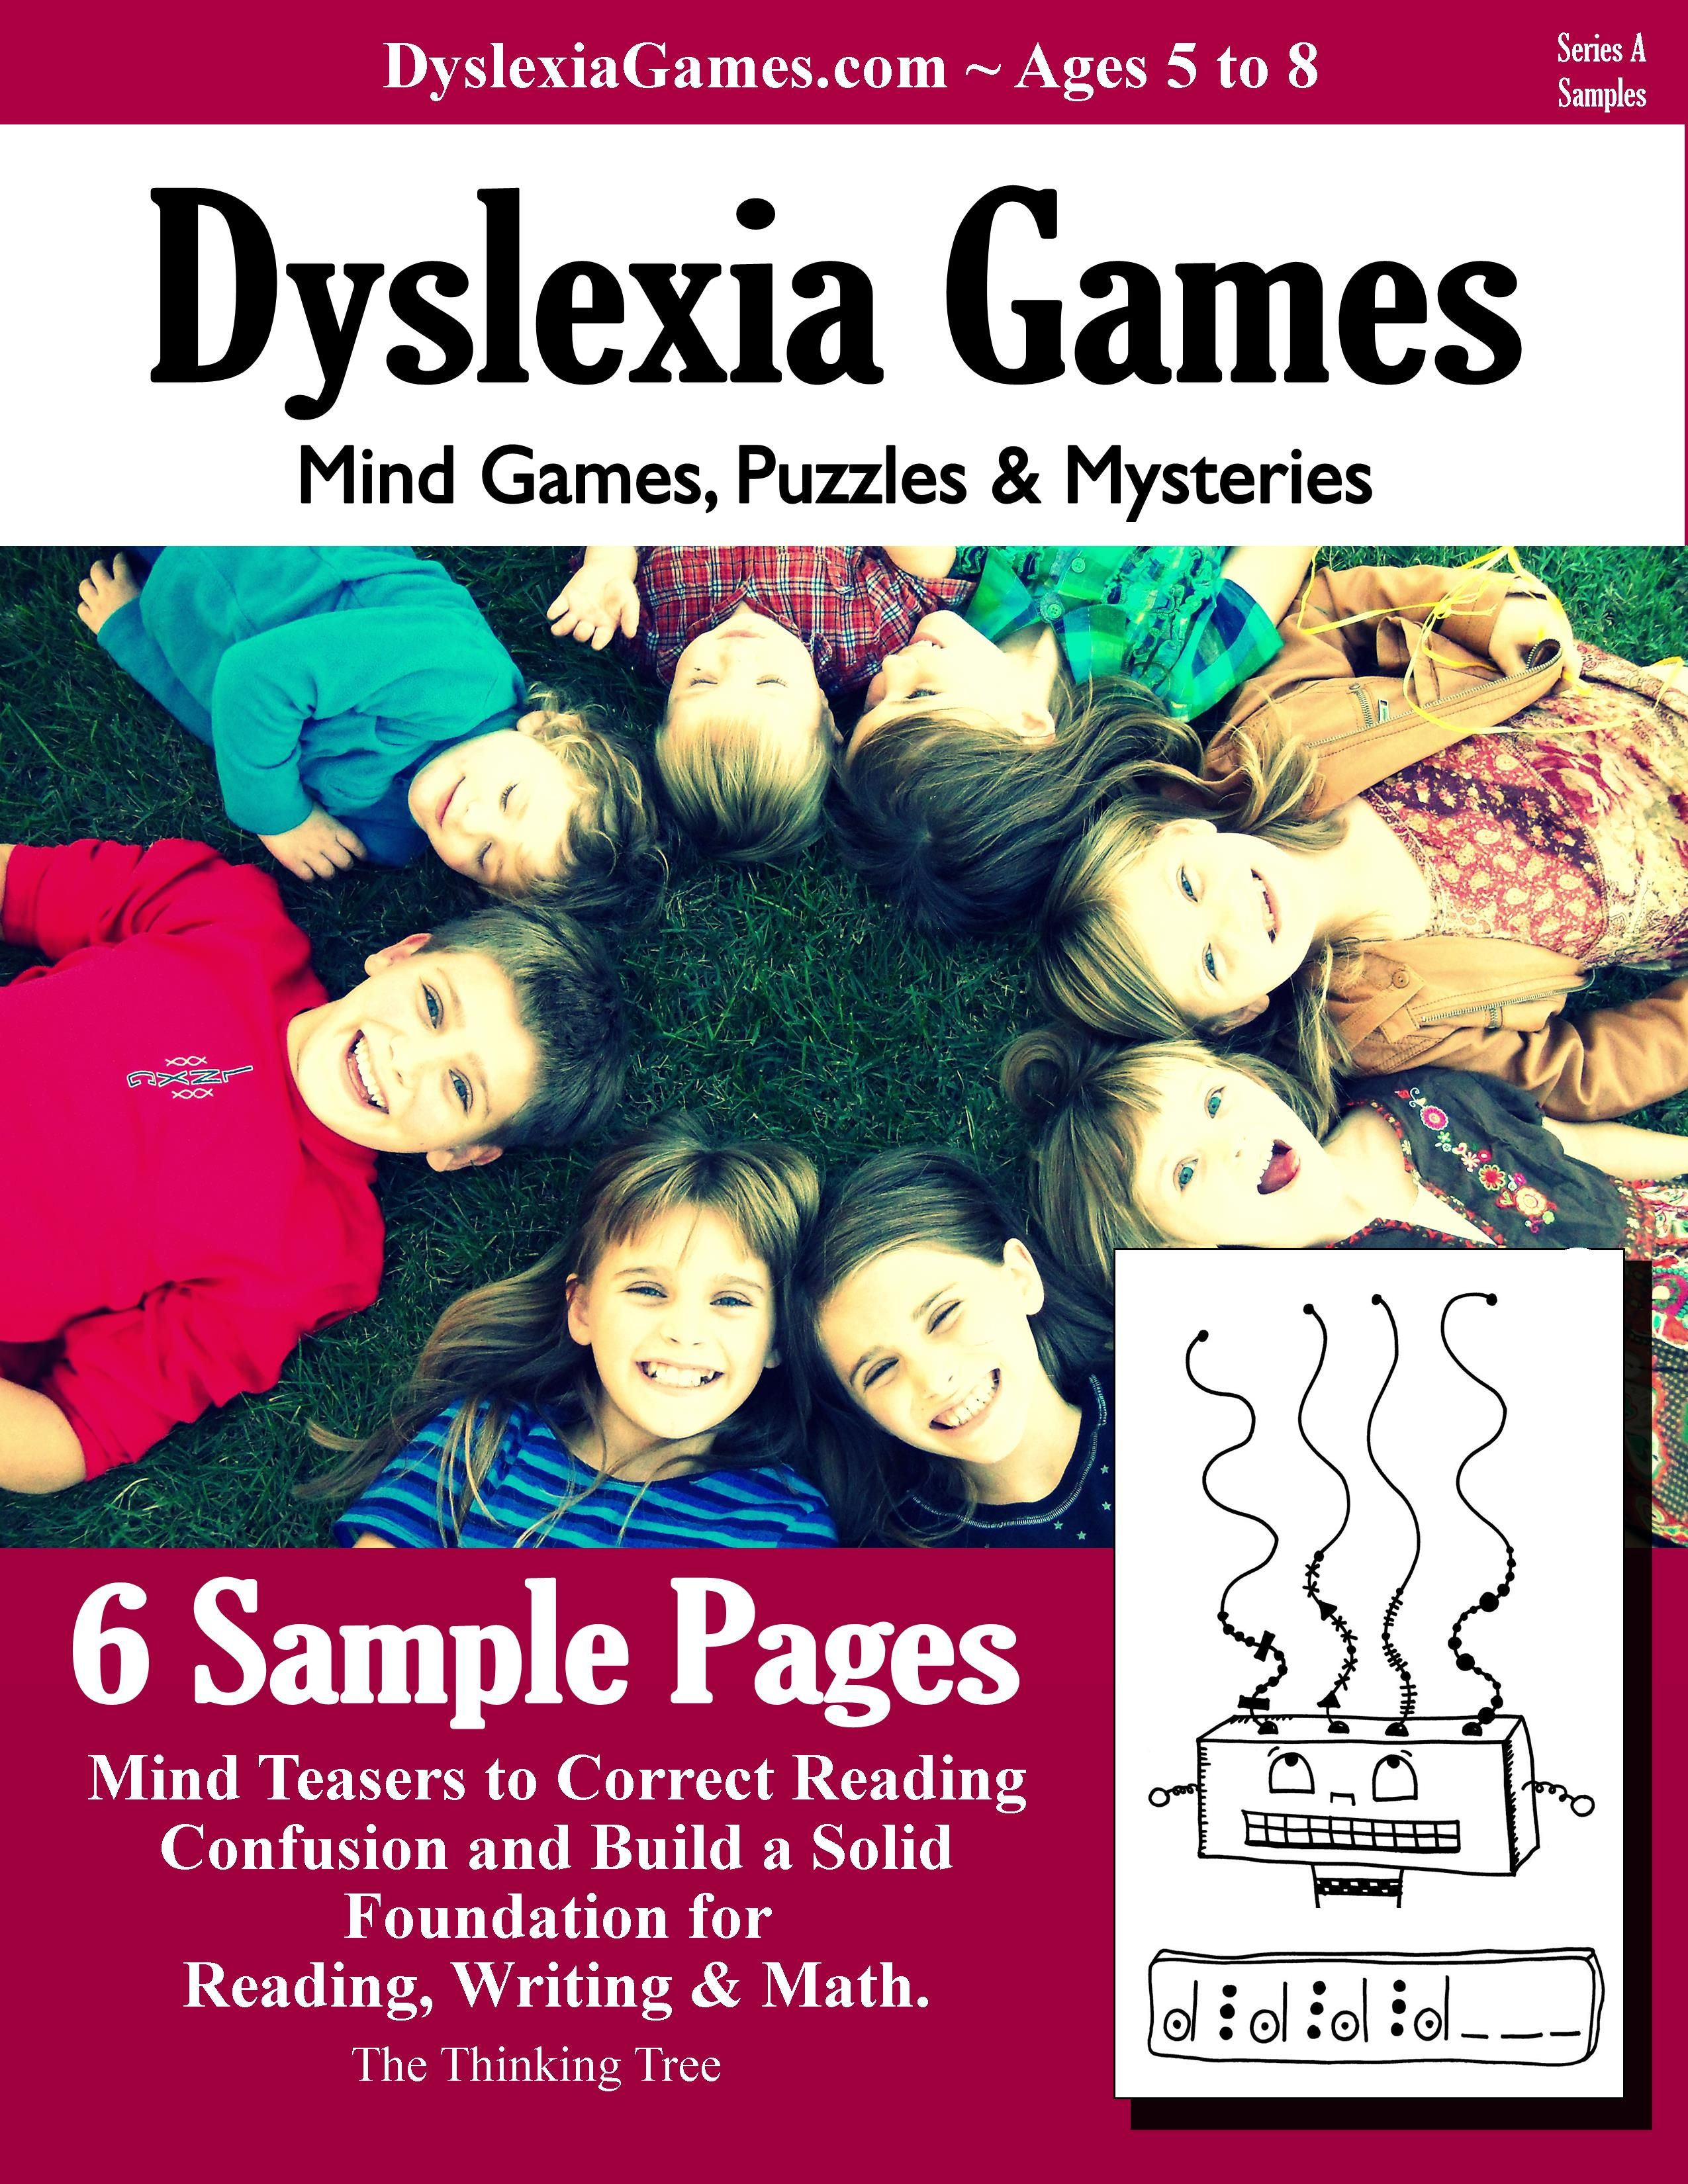 FREE Dyslexia Workbook for Ages 5 to 8 http://www.dyslexiagames.com ...